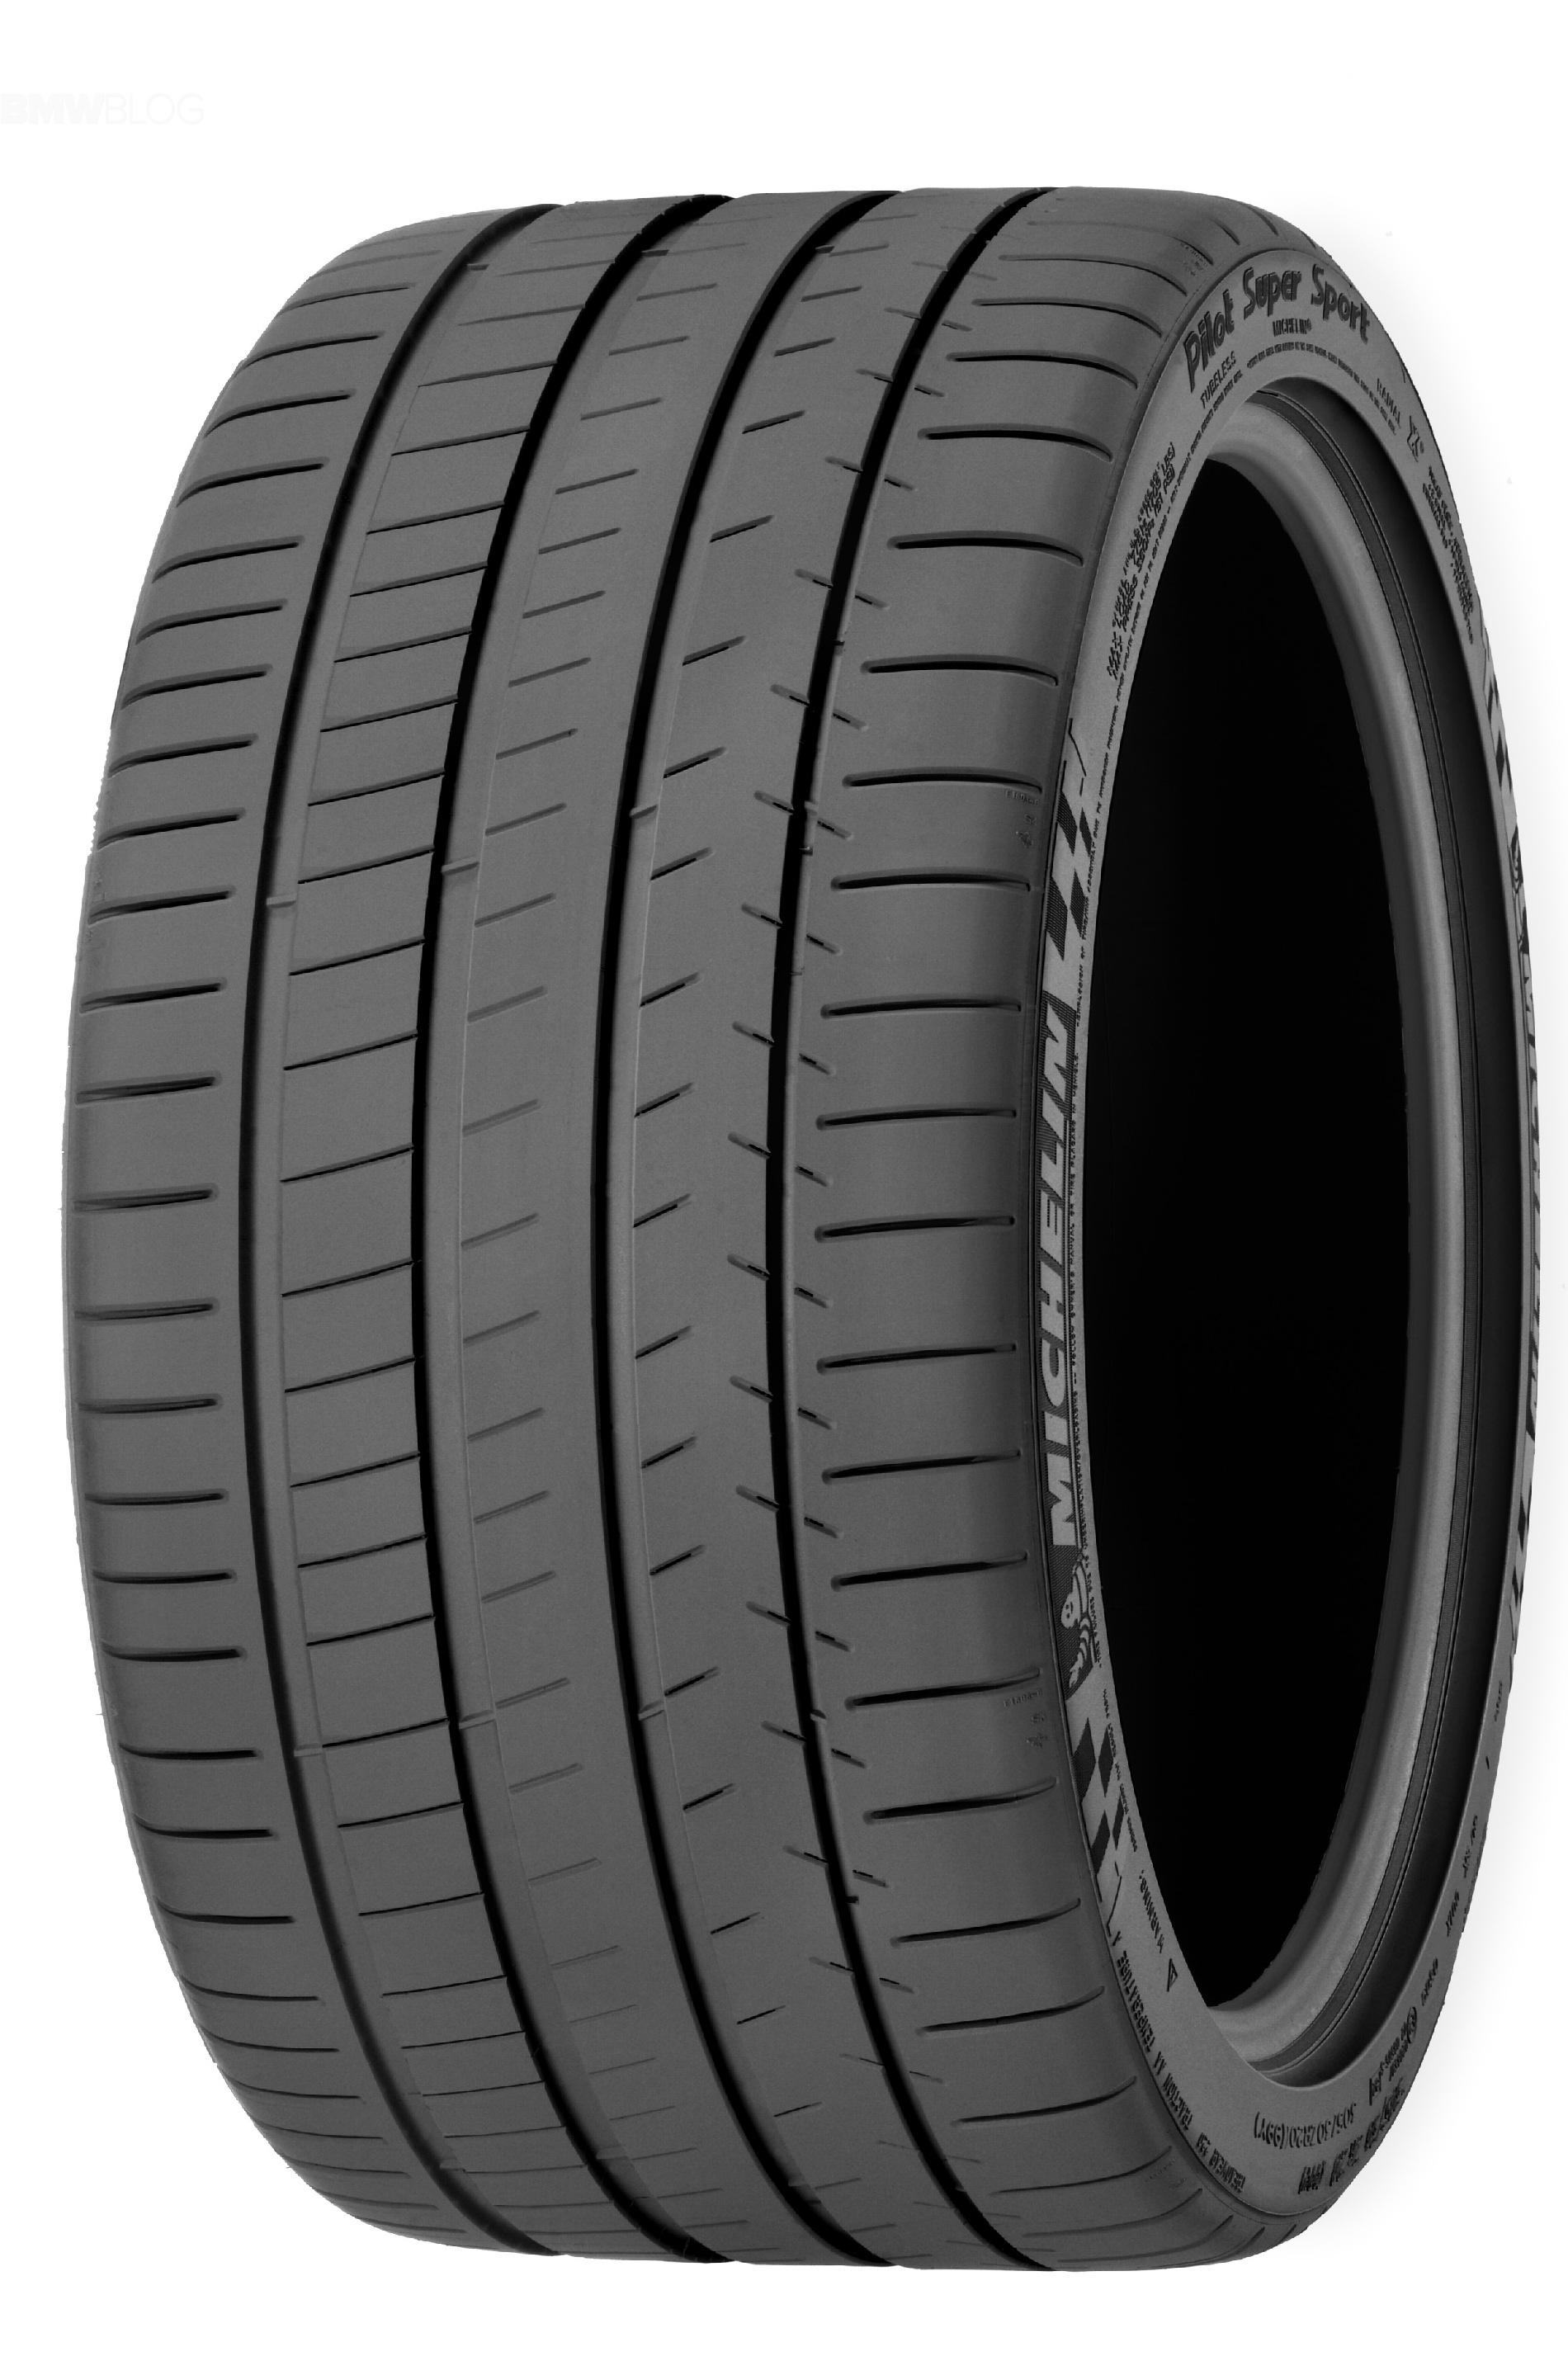 Летняя шина Michelin Pilot Super Sport 275/35 R20 102Y ✩